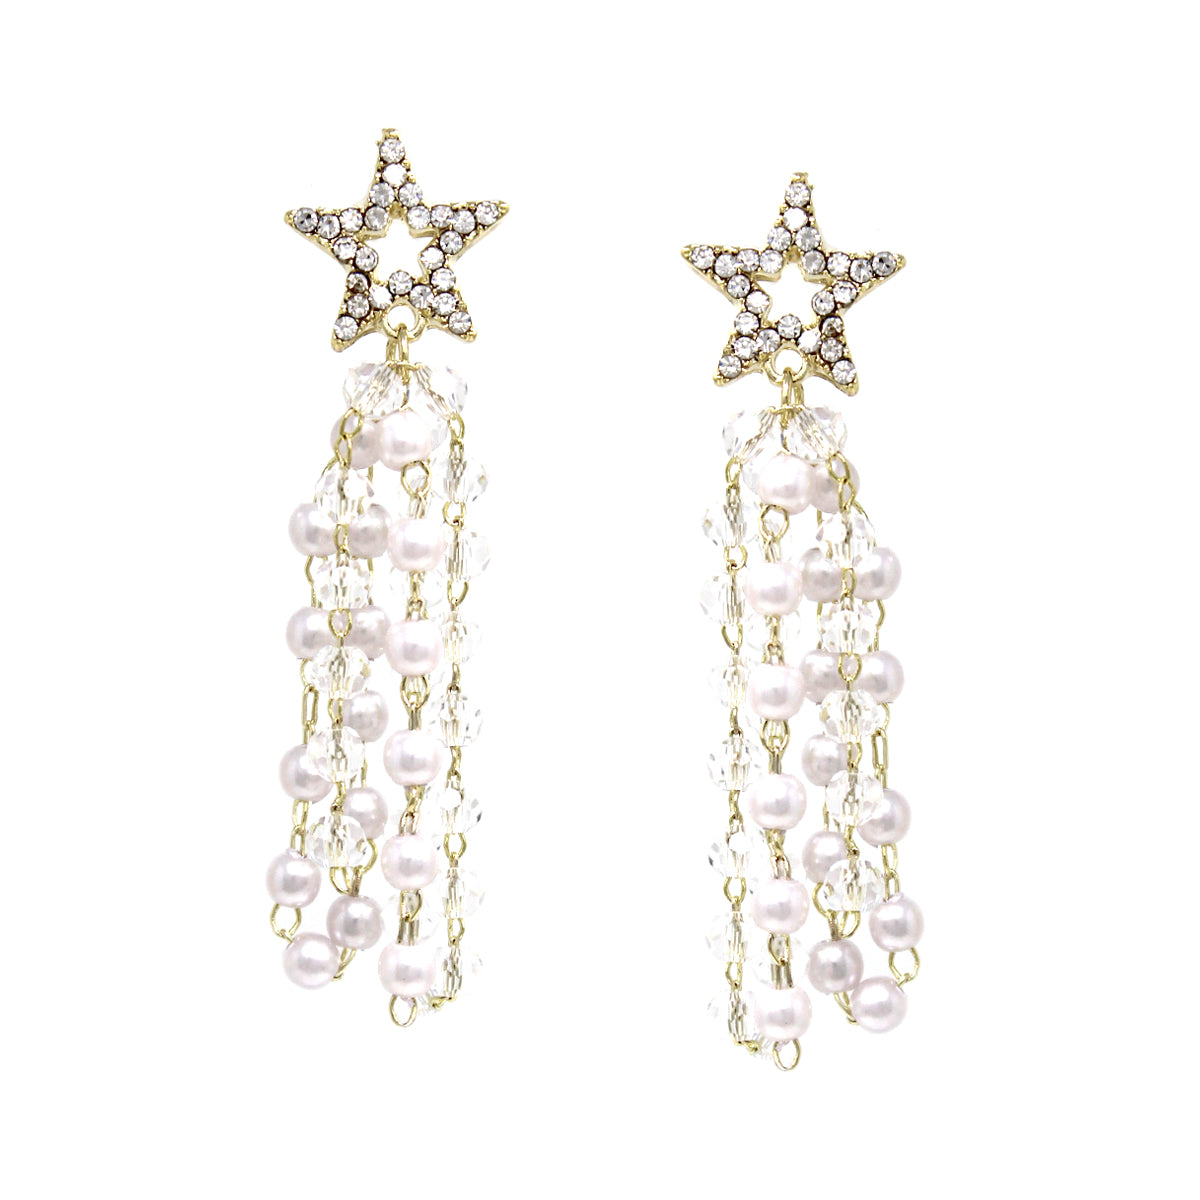 Rhinestone Pave Star With Pearl/ Glass Bead Tassel Drop Earrings